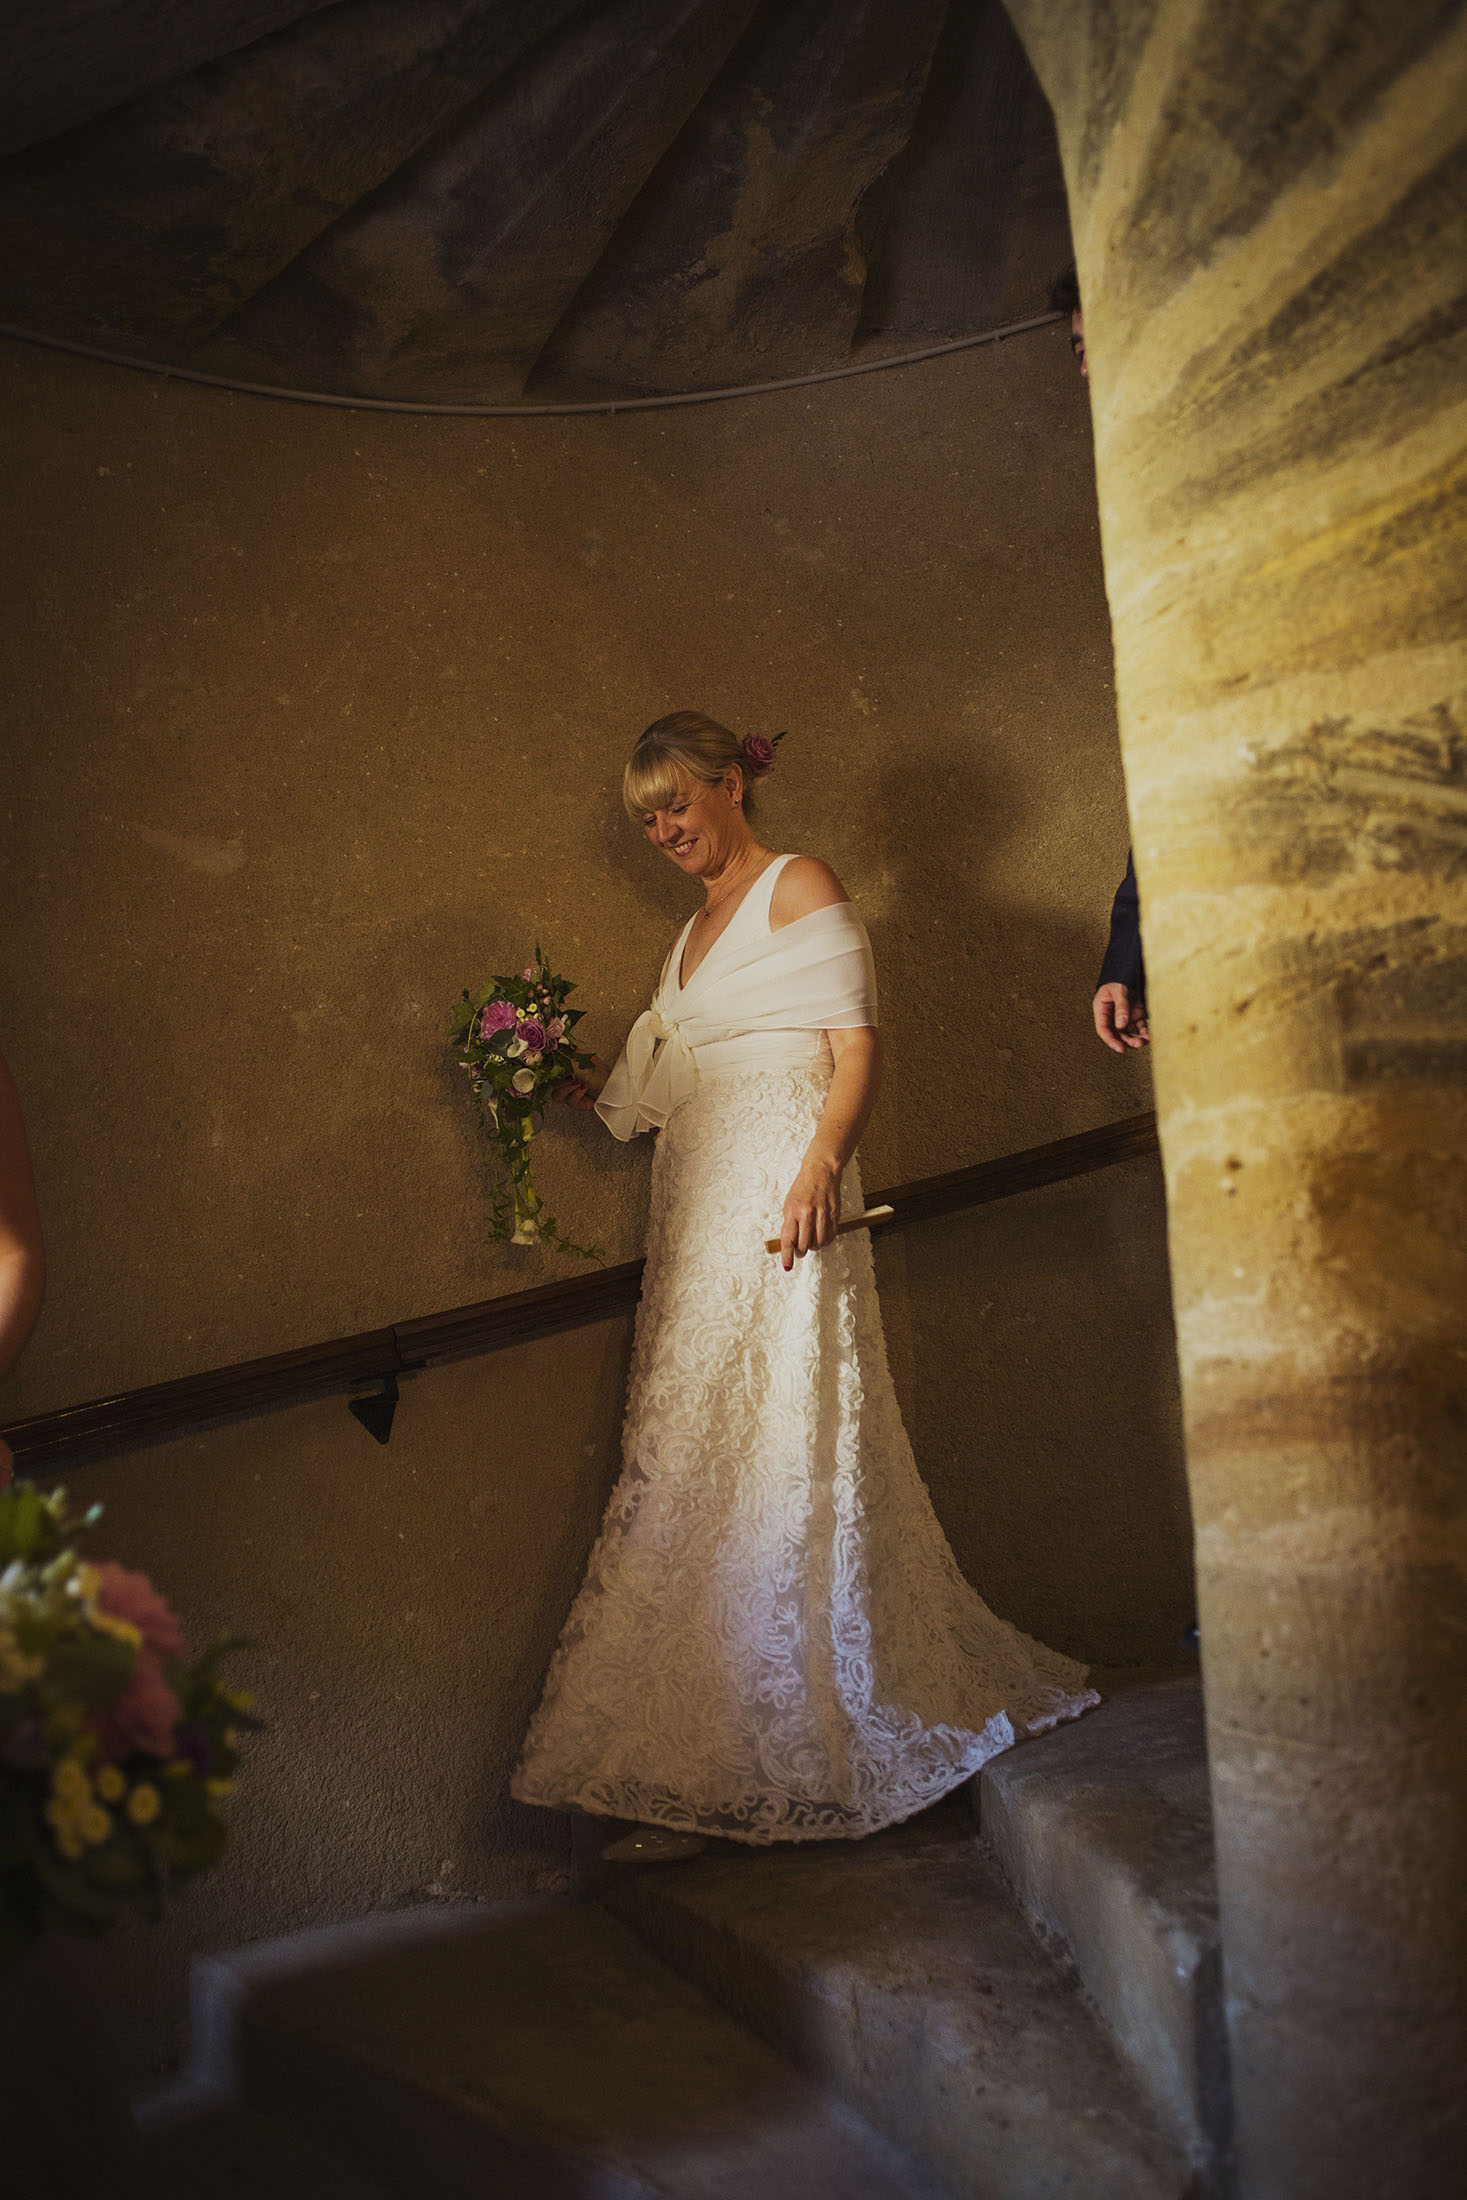 bride walking downstairs at bridal preparations at chateaux des ducs de joyeuses france destination wedding photography